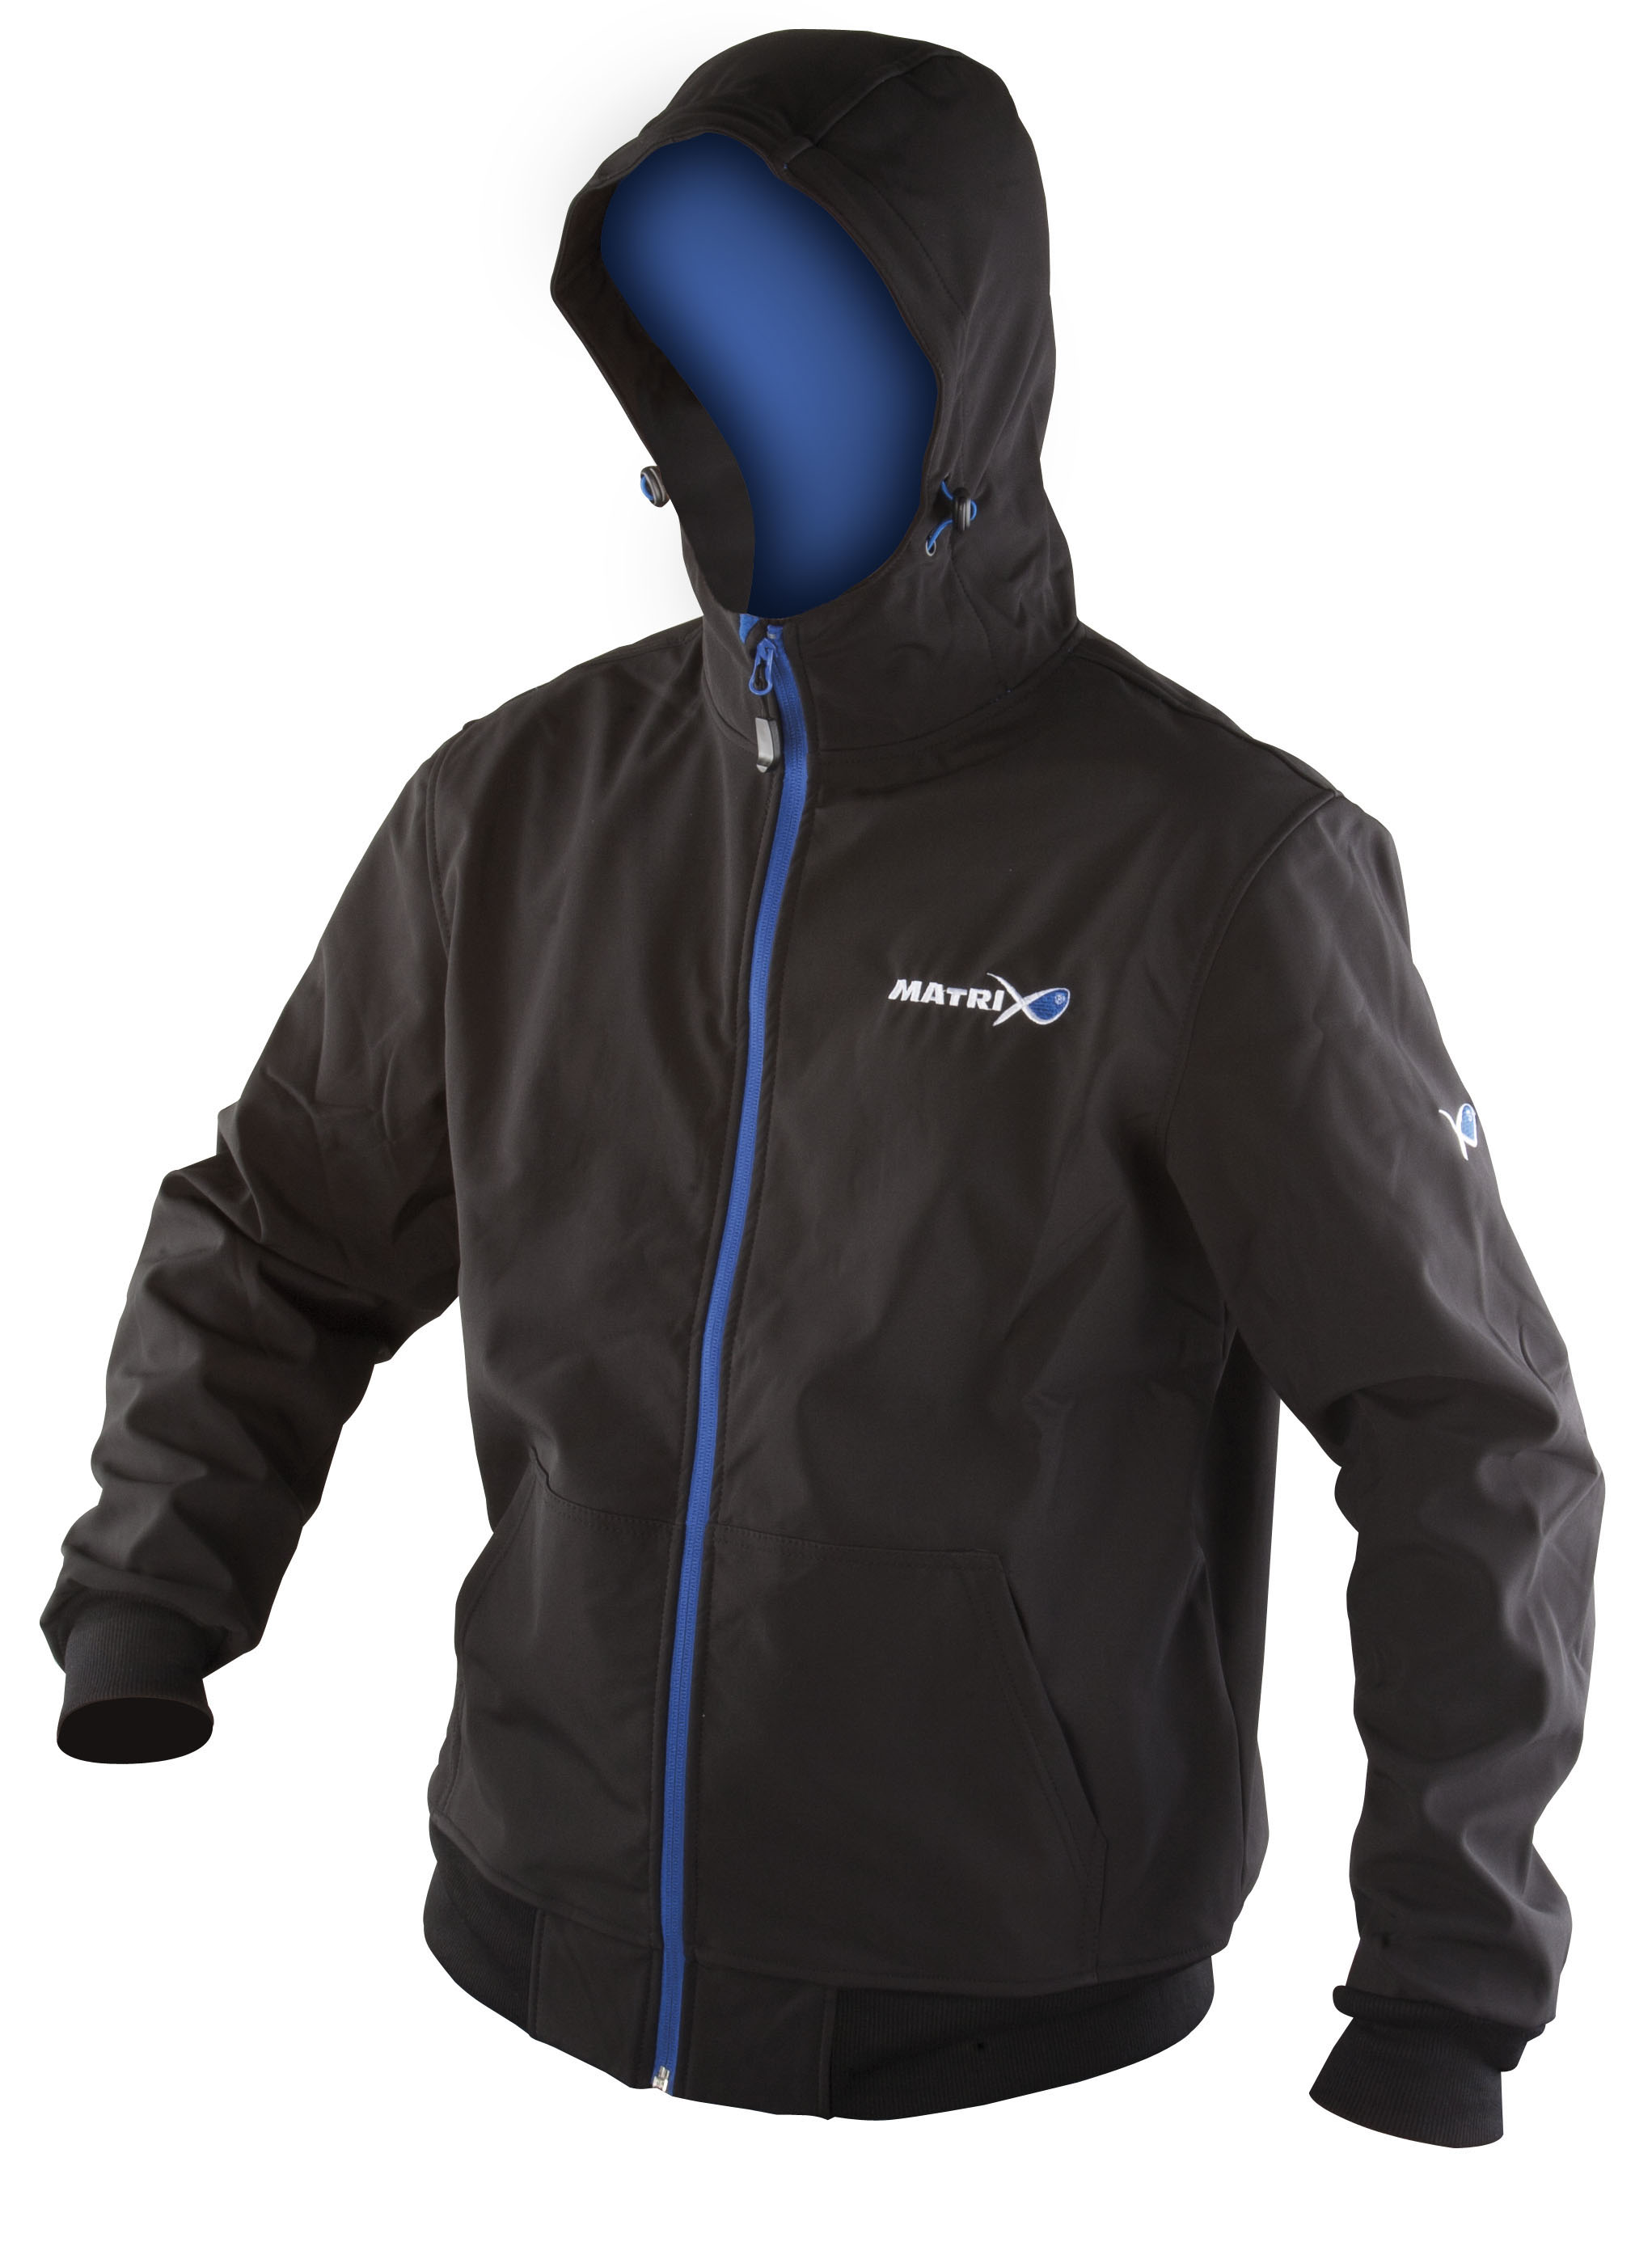 MATRIX SOFTSHELL HODDY BLACK/BLUE